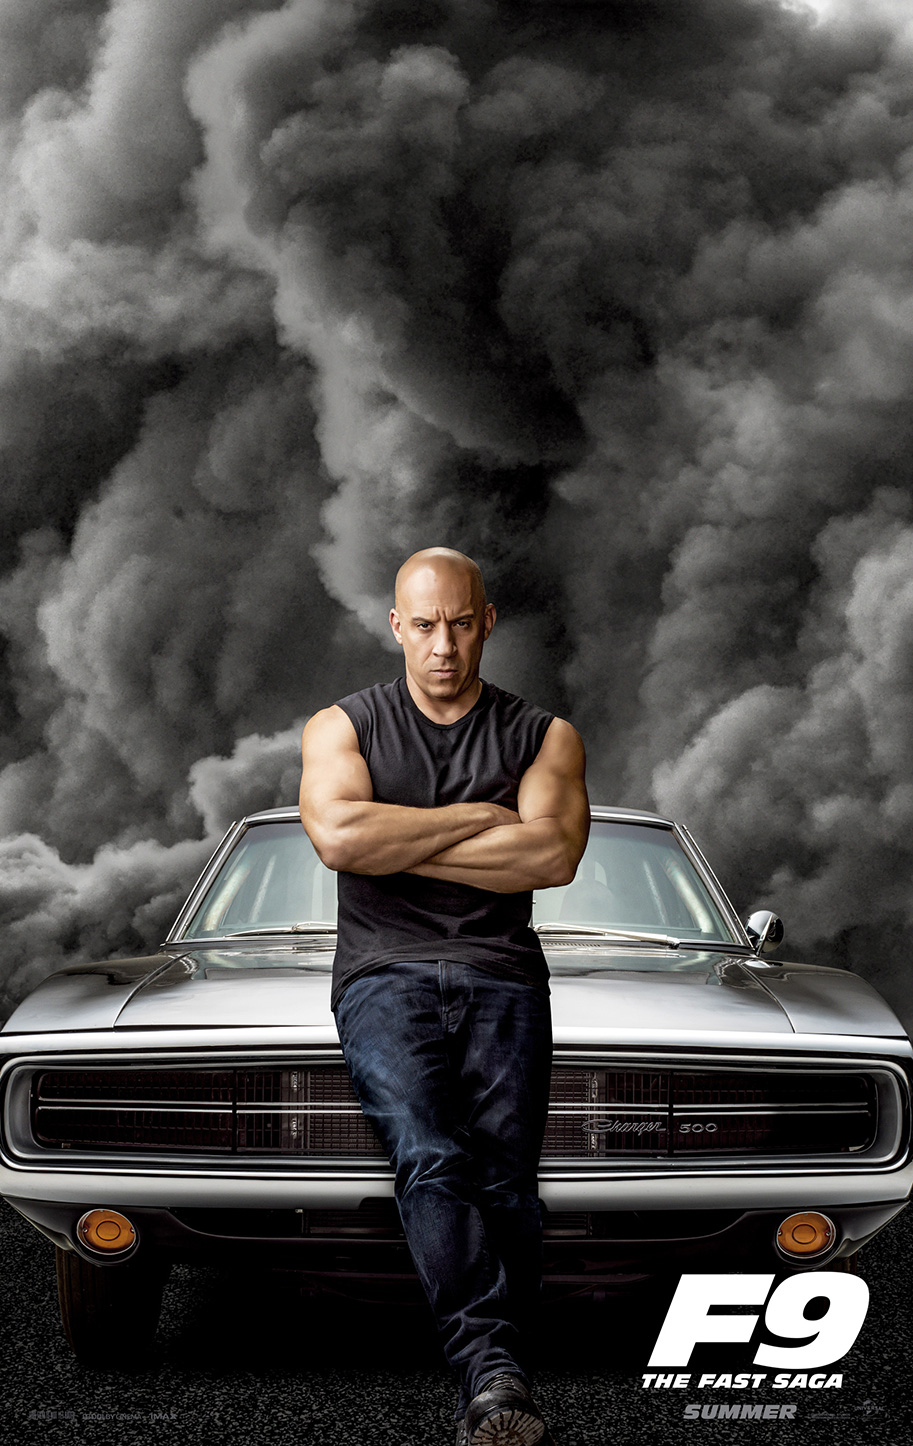 Fast and Furious 9 Trailer & Poster 6